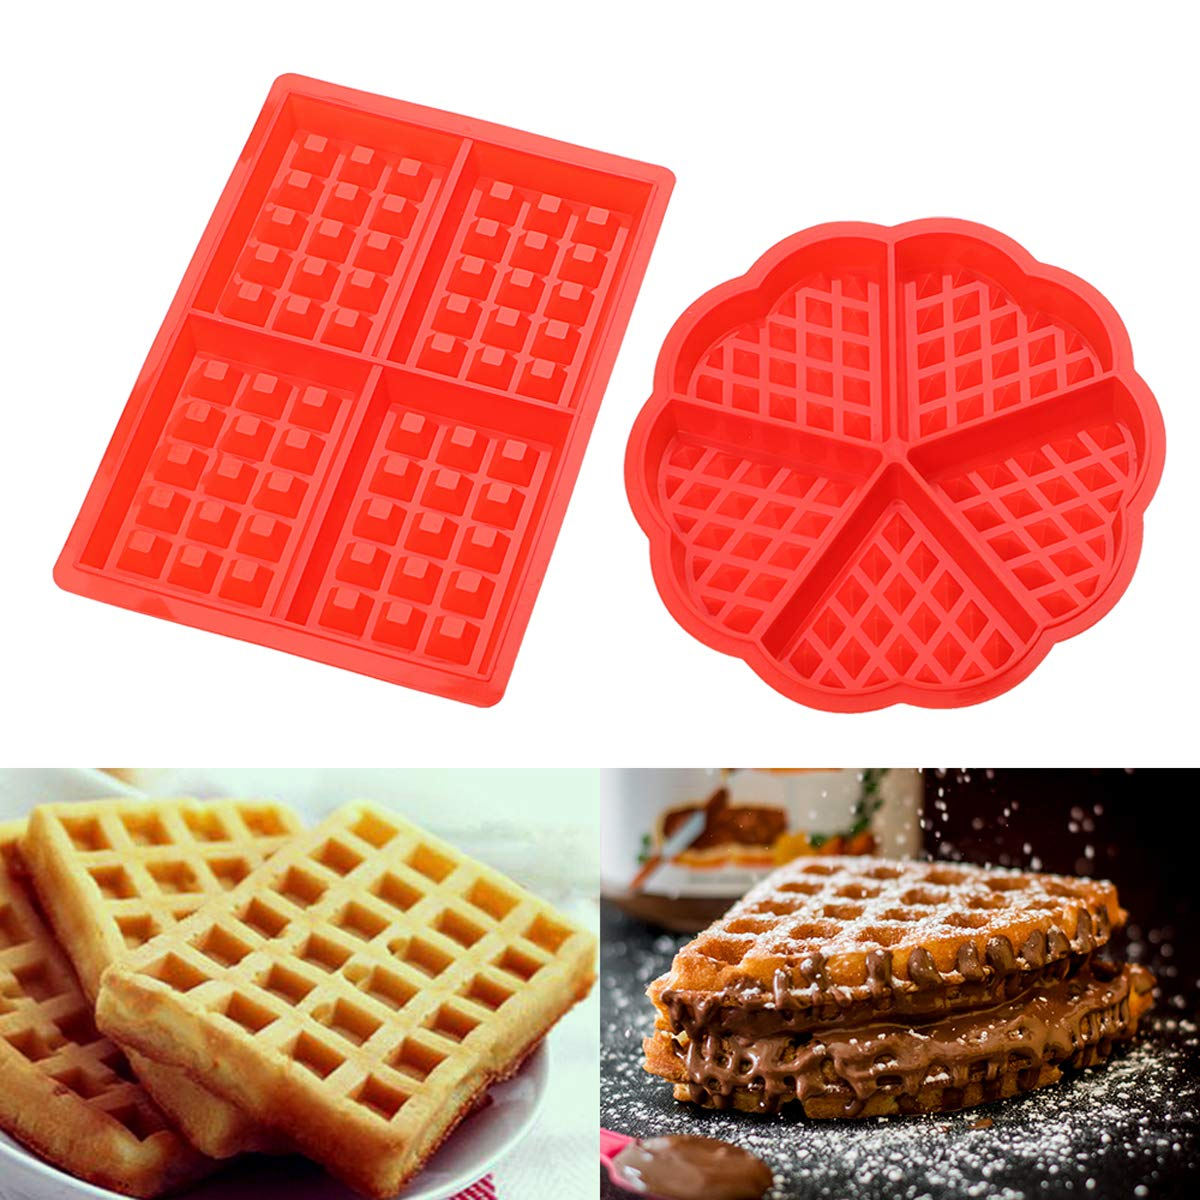 TECHSON Waffle Mold, 2 Pack Silicone Candy Chocolate Muffin Maker, Bakeware Accessories (Heart Shape&Square Shape)